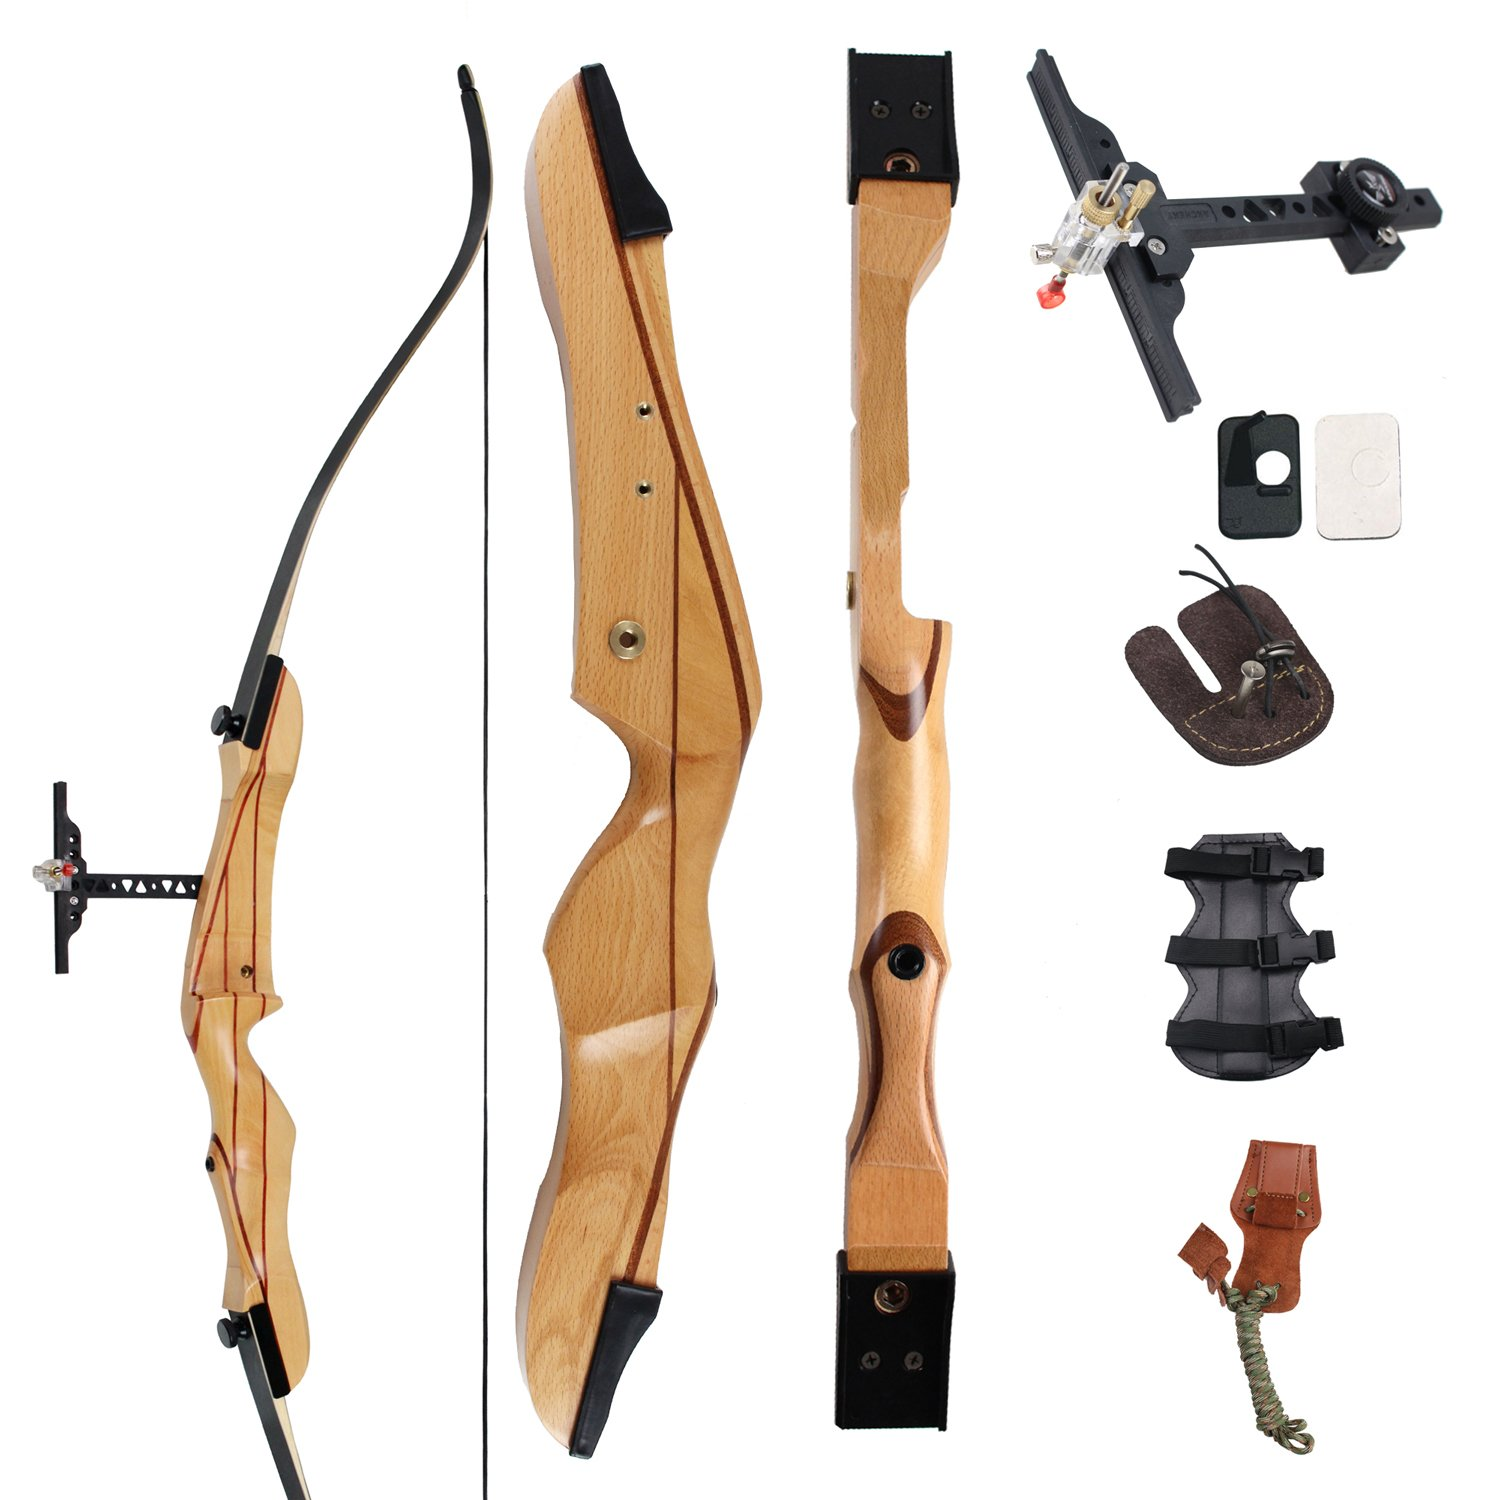 SinoArt 68'' Takedown Recurve Bow Adult Archery Competition Athletic Bow Weights 18 20 22 24 26 28 30 32 34 36 LB RIGHT HANDED Archery Kit (RIGHT HAND 20 LB)